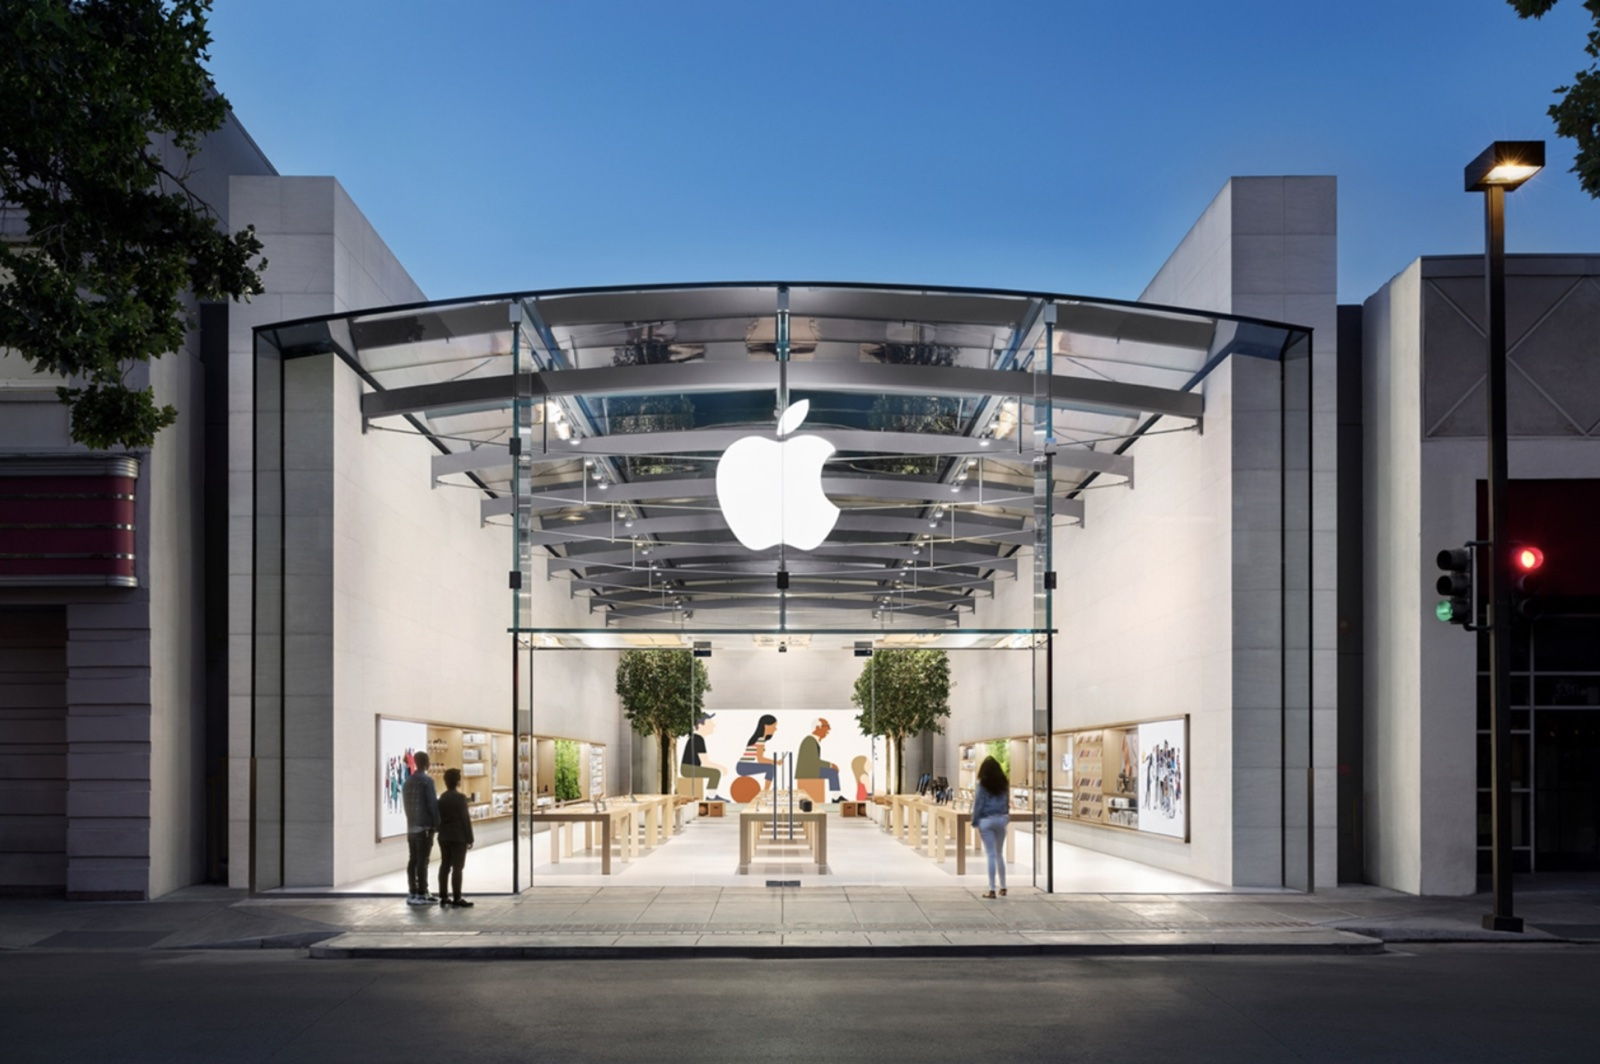 Apple Not Expecting U.S. Offices to Return to Normal in 2020, Encourages Retail Staff at Closed Stores to Work Remotely